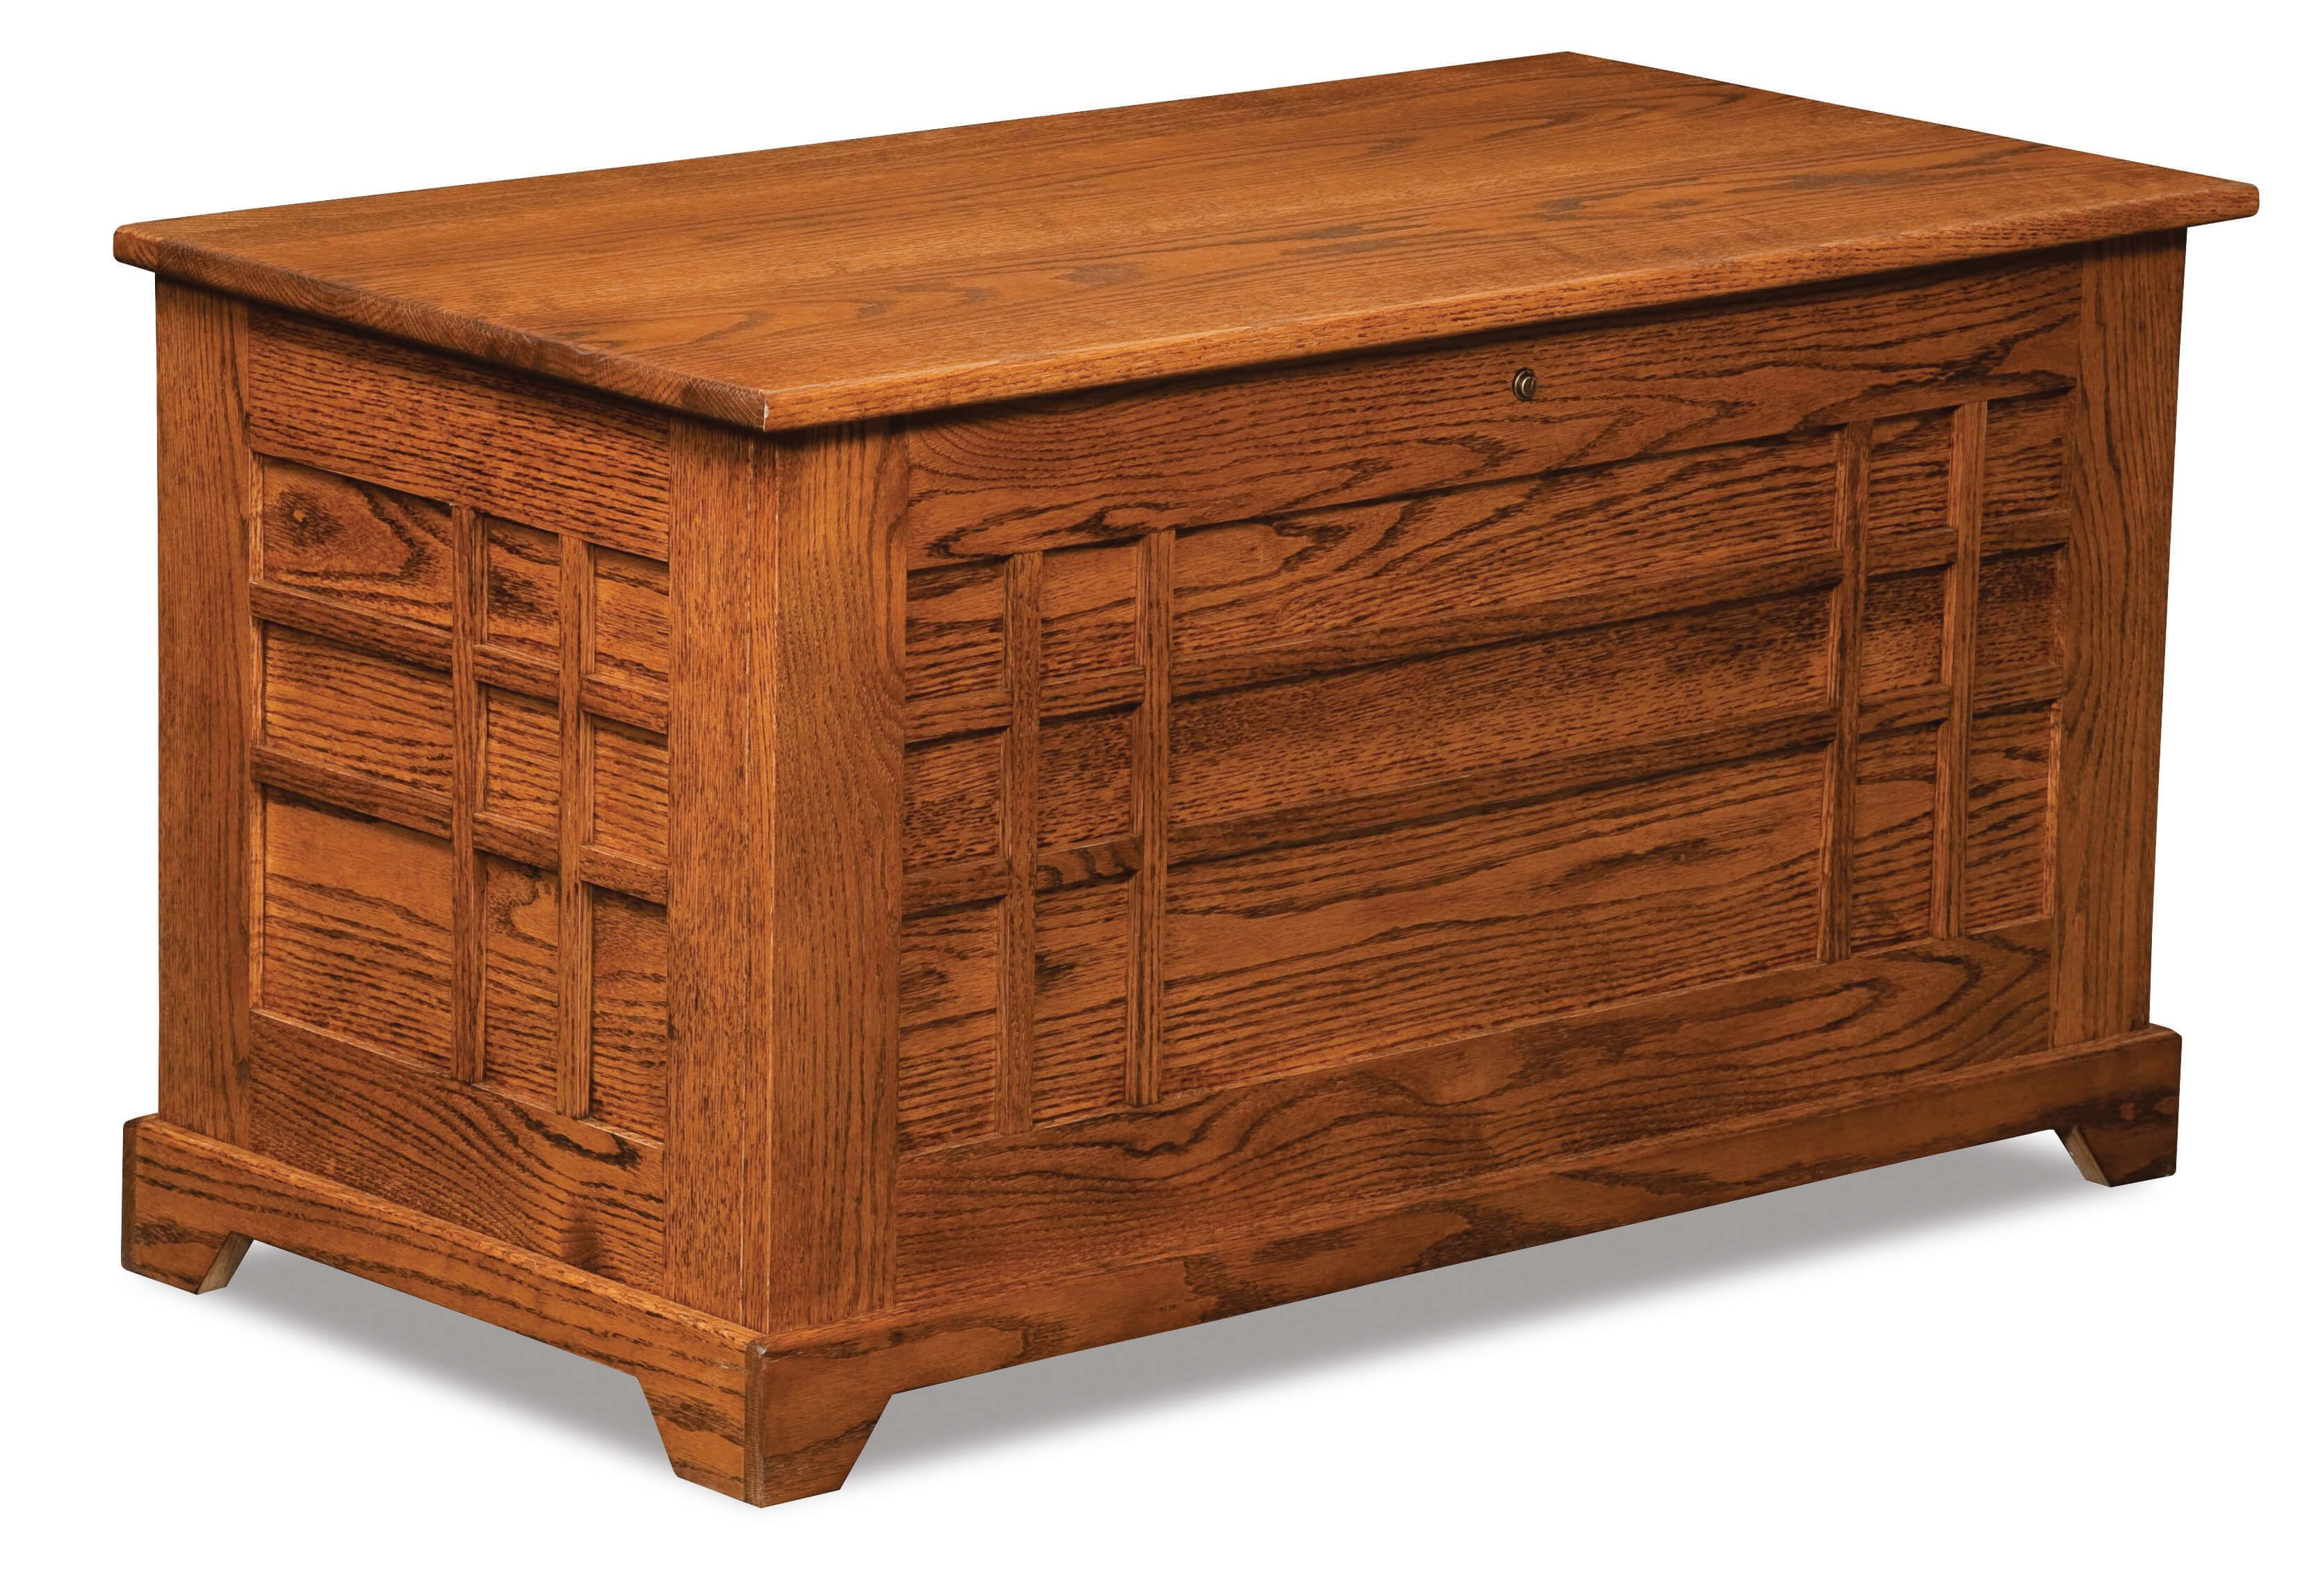 Selena Cedar Chest with in-laid panels